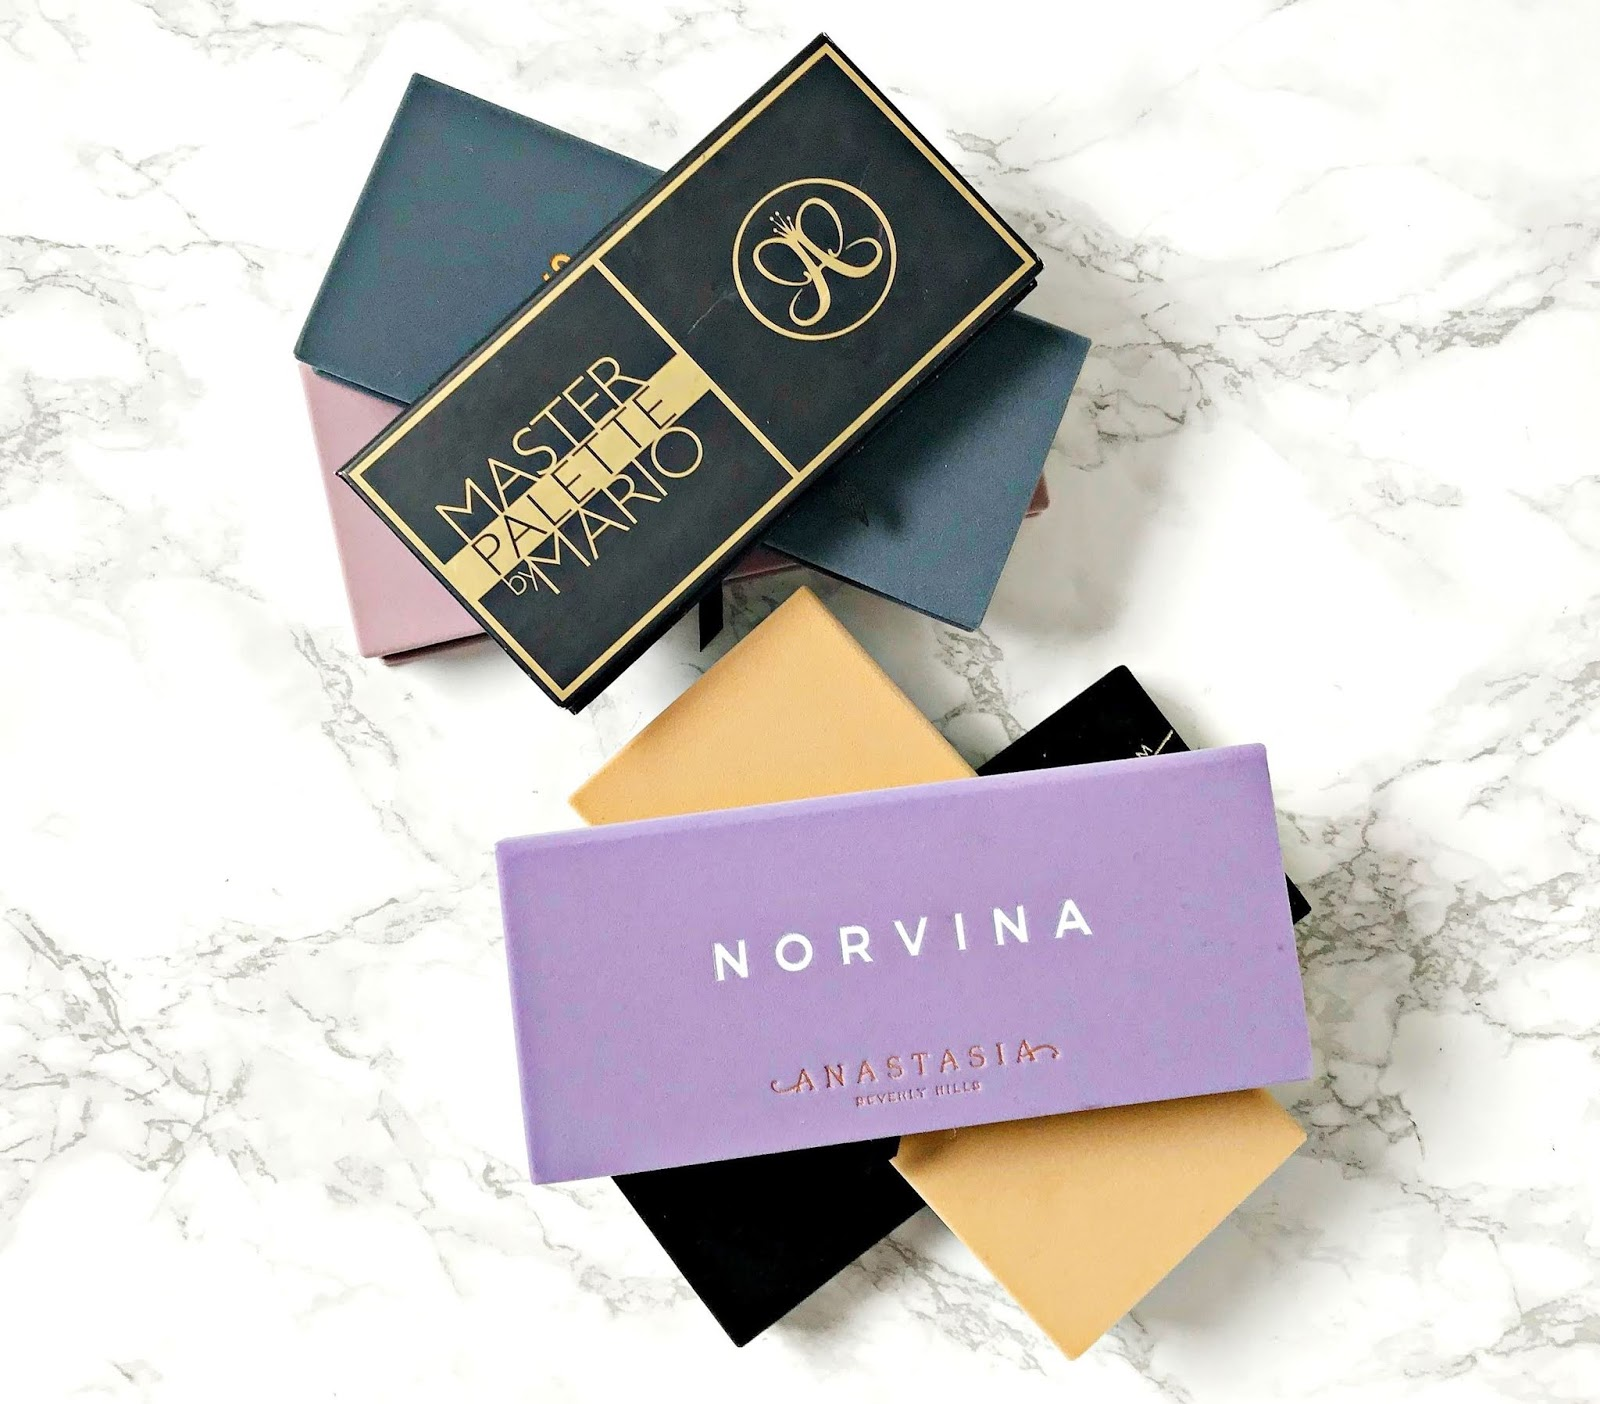 Anastasia Beverly Hills Norvina Palette Review, Swatches and Giveaway